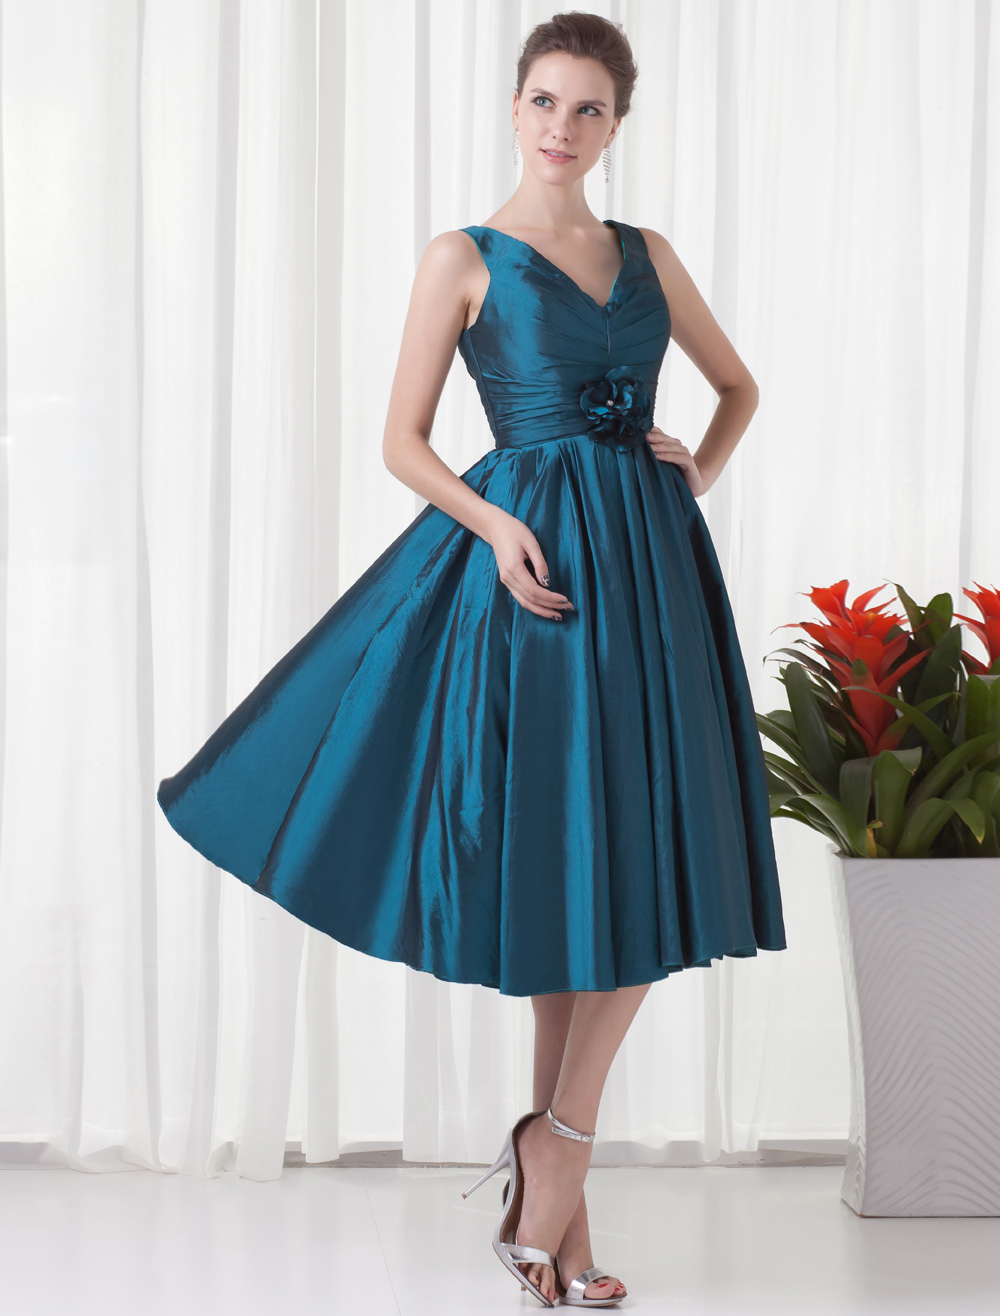 Short Bridesmaid Dress Ink Blue V Neck Sleeveless Taffeta Waist Flower Pleated Wedding Party Dress